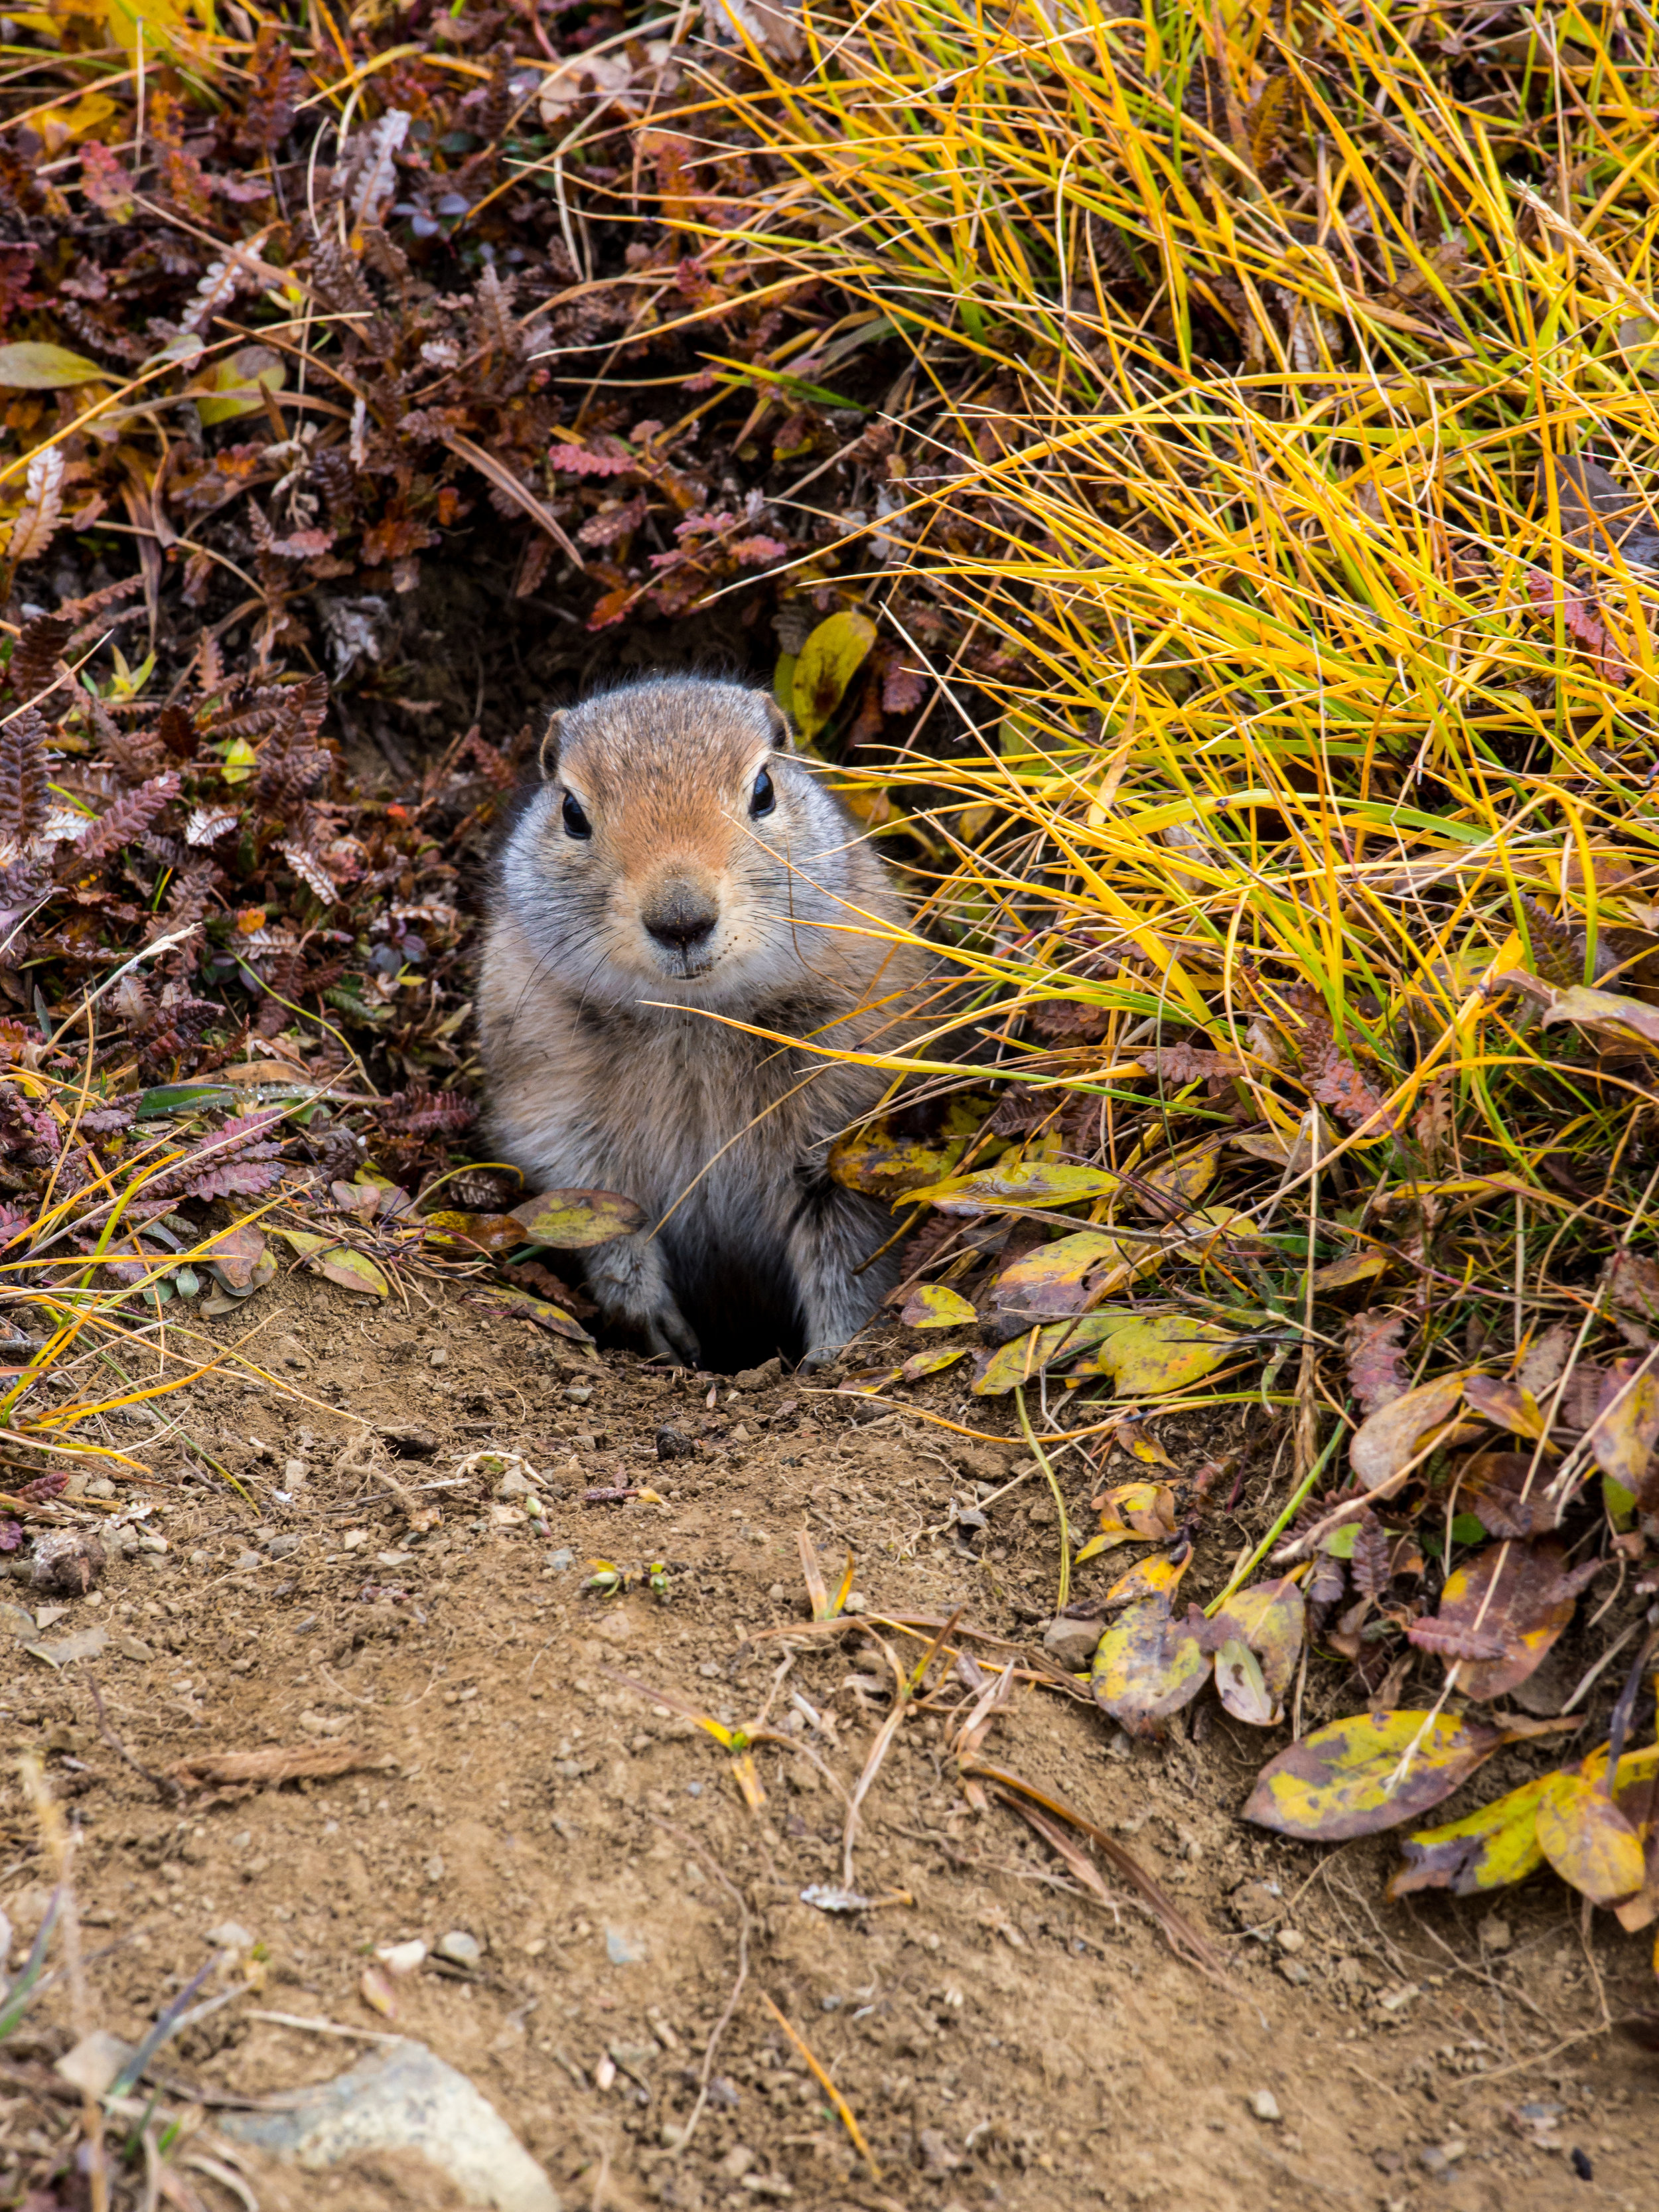 An arctic ground squirrel pops its head out of its hole.